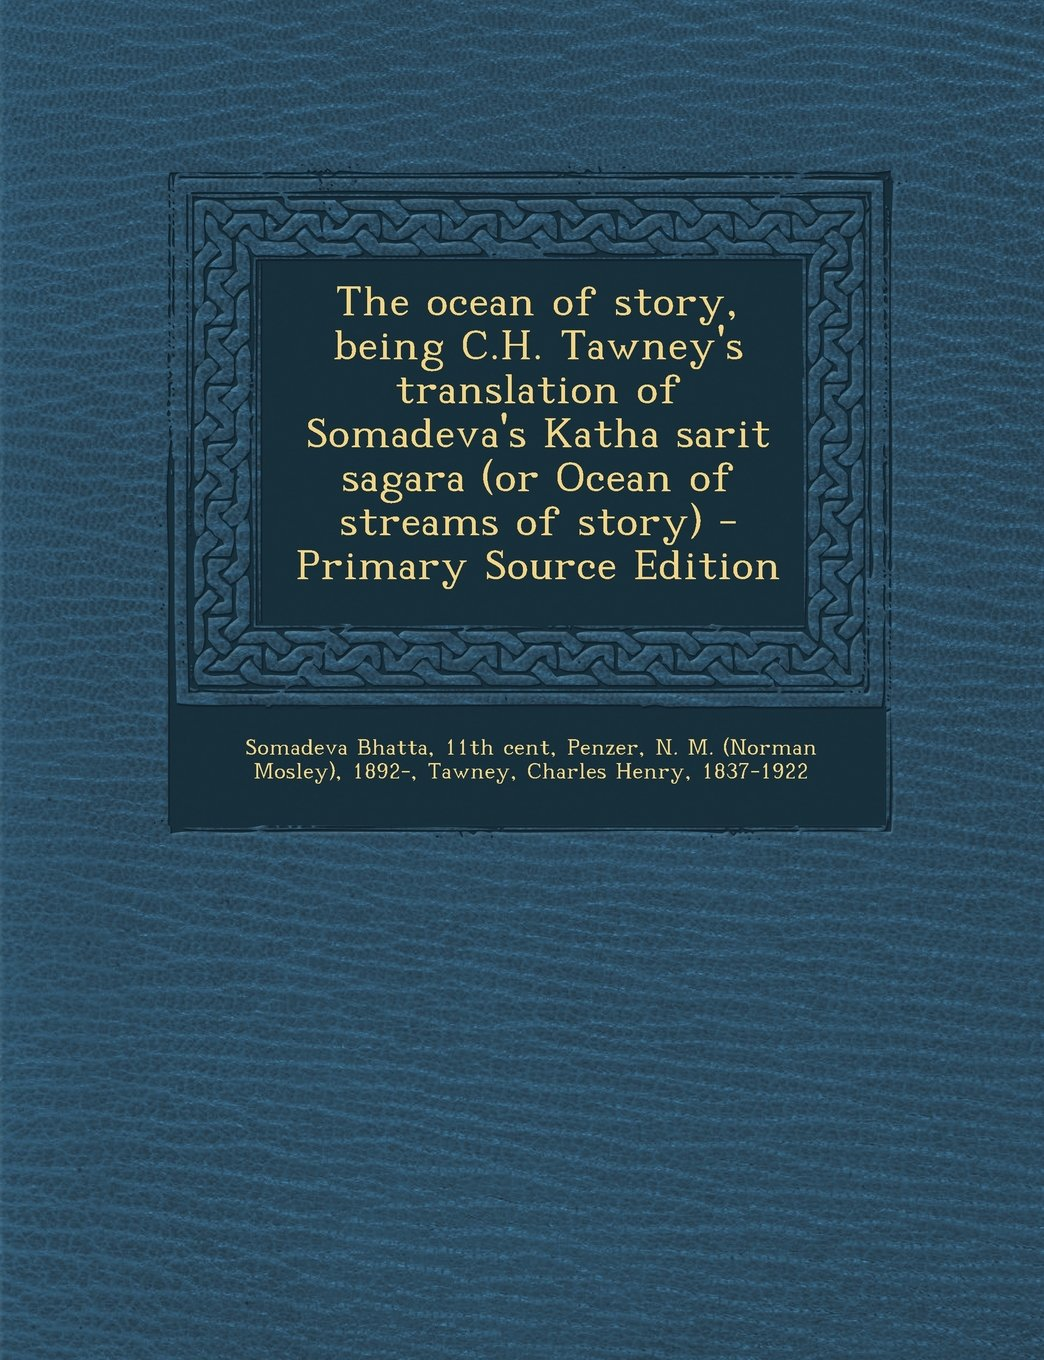 Read Online The ocean of story, being C.H. Tawney's translation of Somadeva's Katha sarit sagara (or Ocean of streams of story) - Primary Source Edition pdf